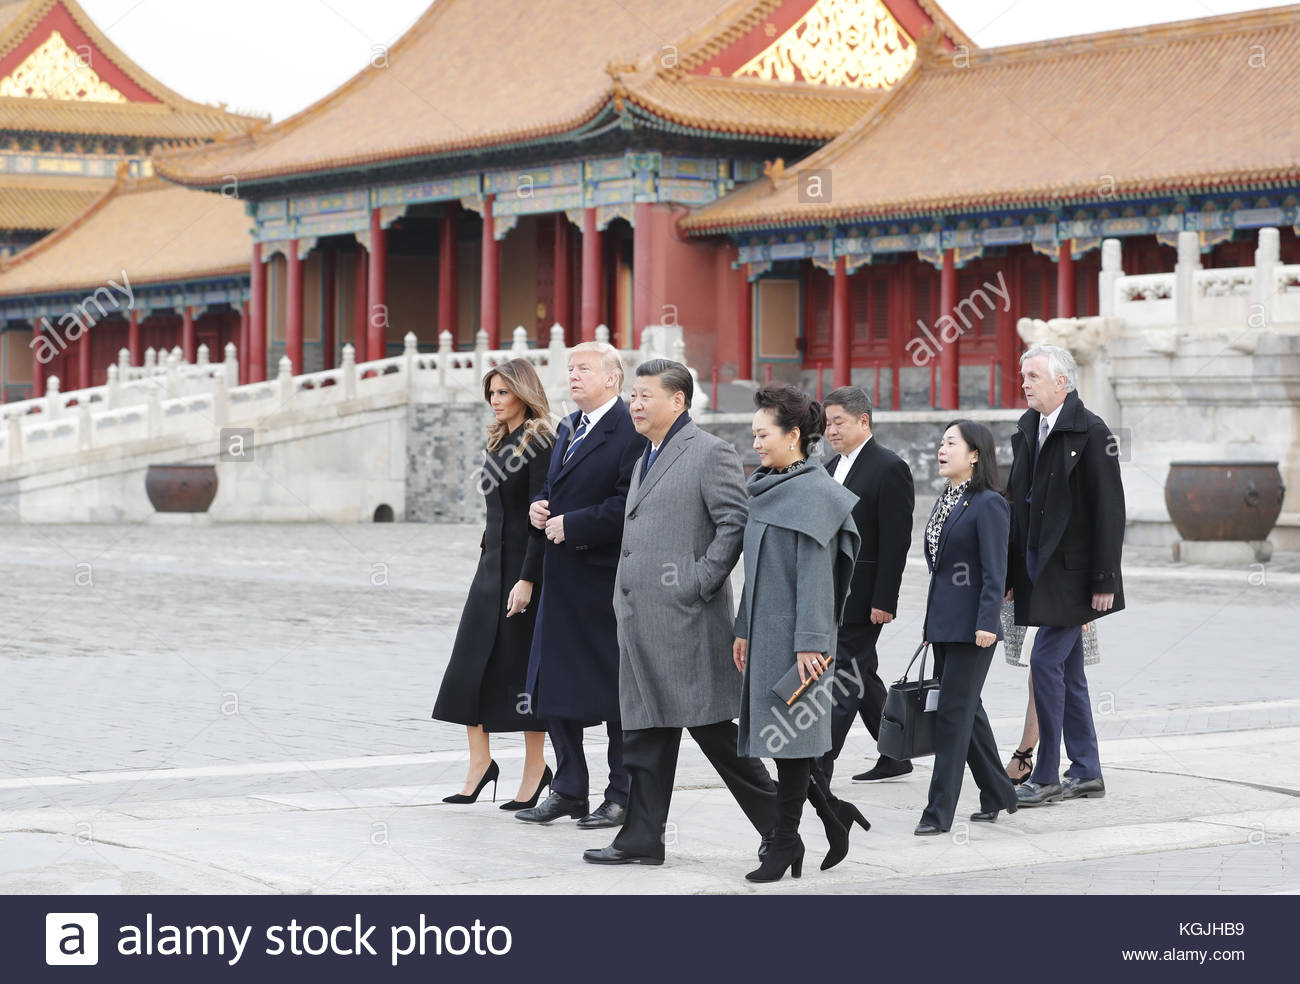 Beijing, China. 08th Nov, 2017. US President Donald Trump and wife Melania come to China for state visit in Beijing, - Stock Image